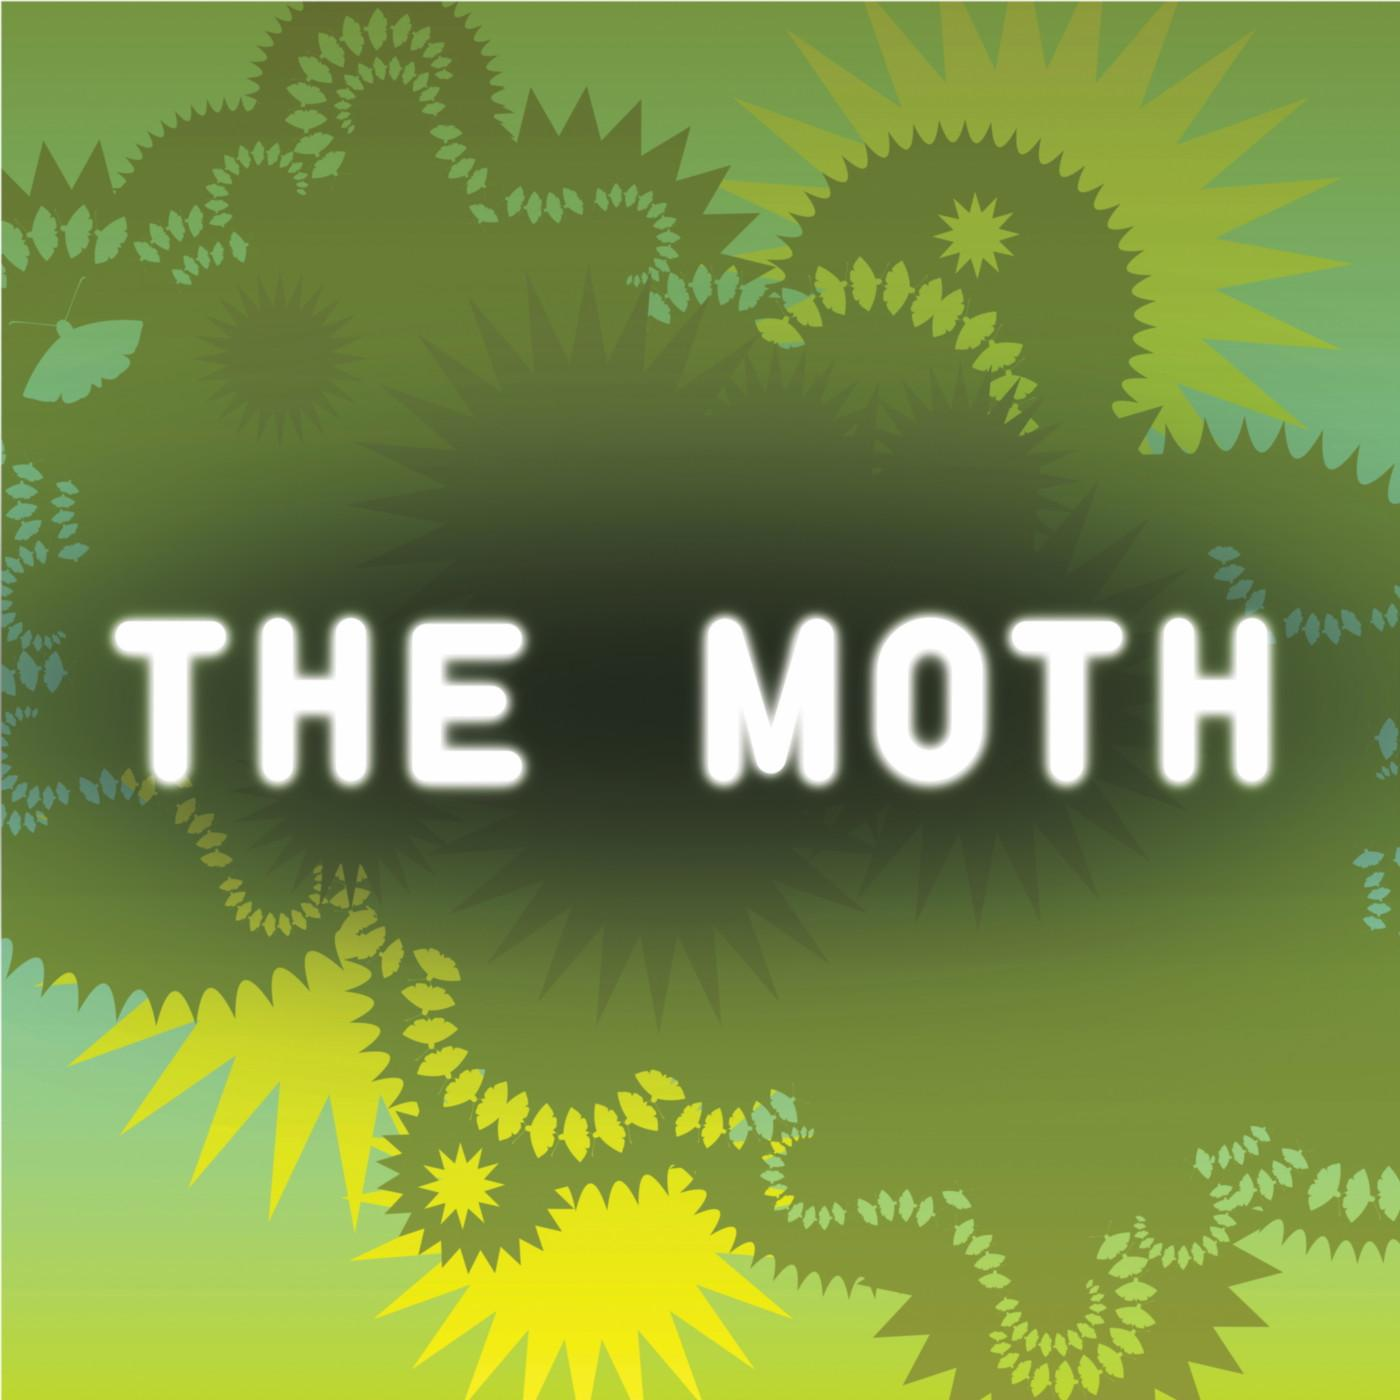 moth_podcast_1400x1400.jpg